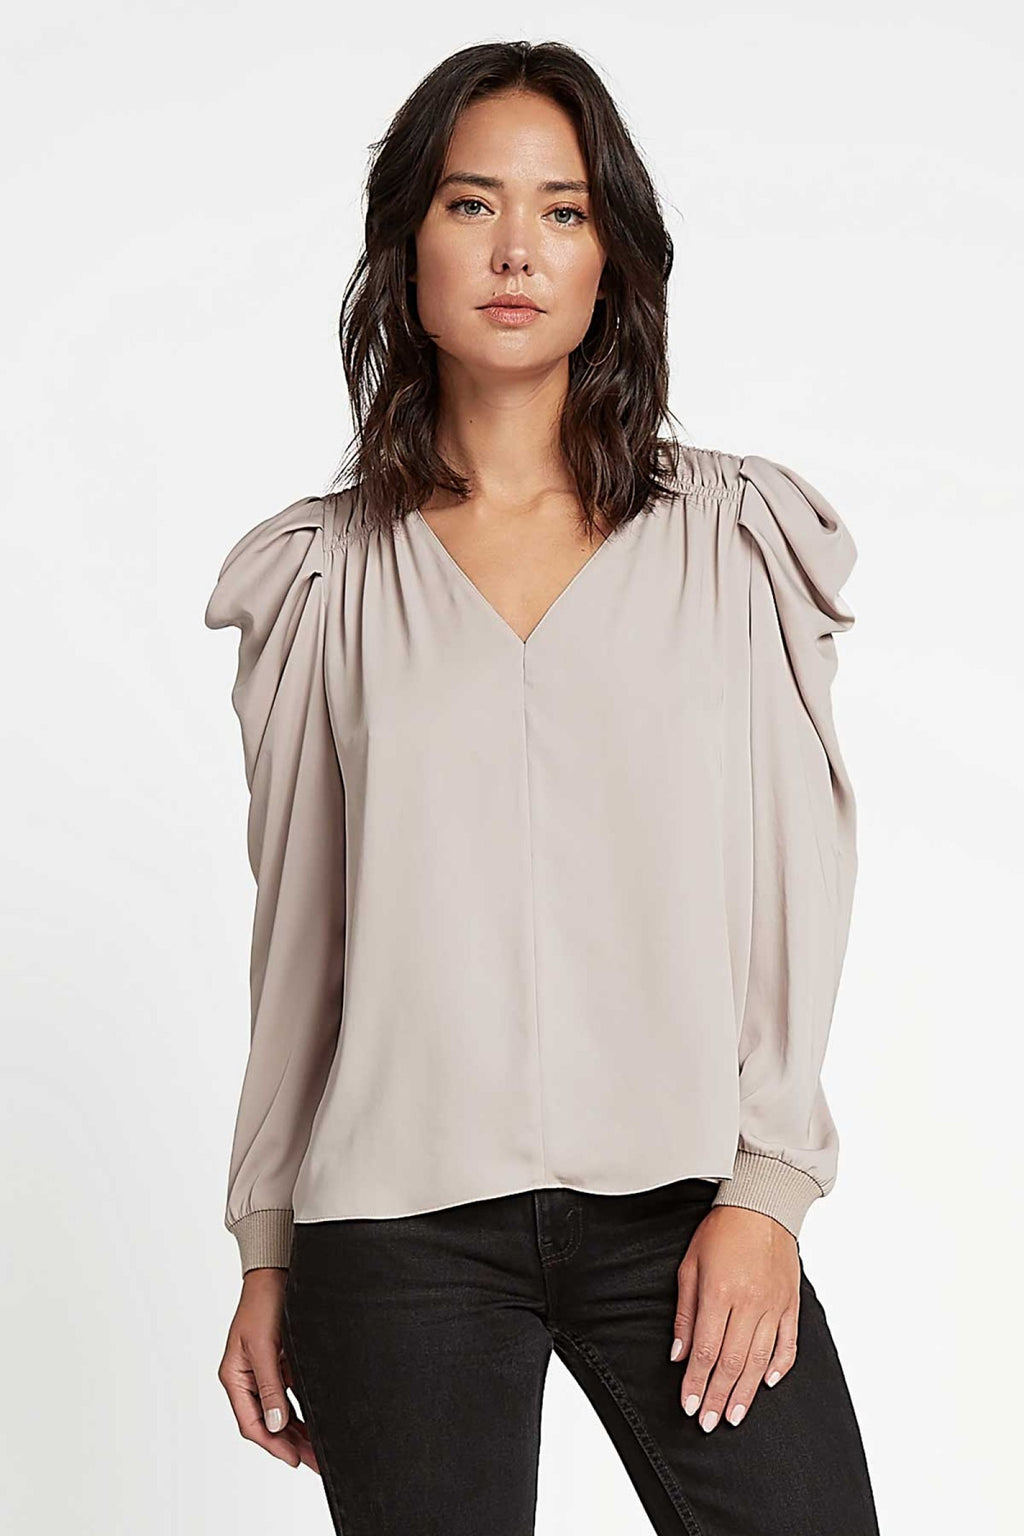 Voluminous Sleeve V-Neck Blouse